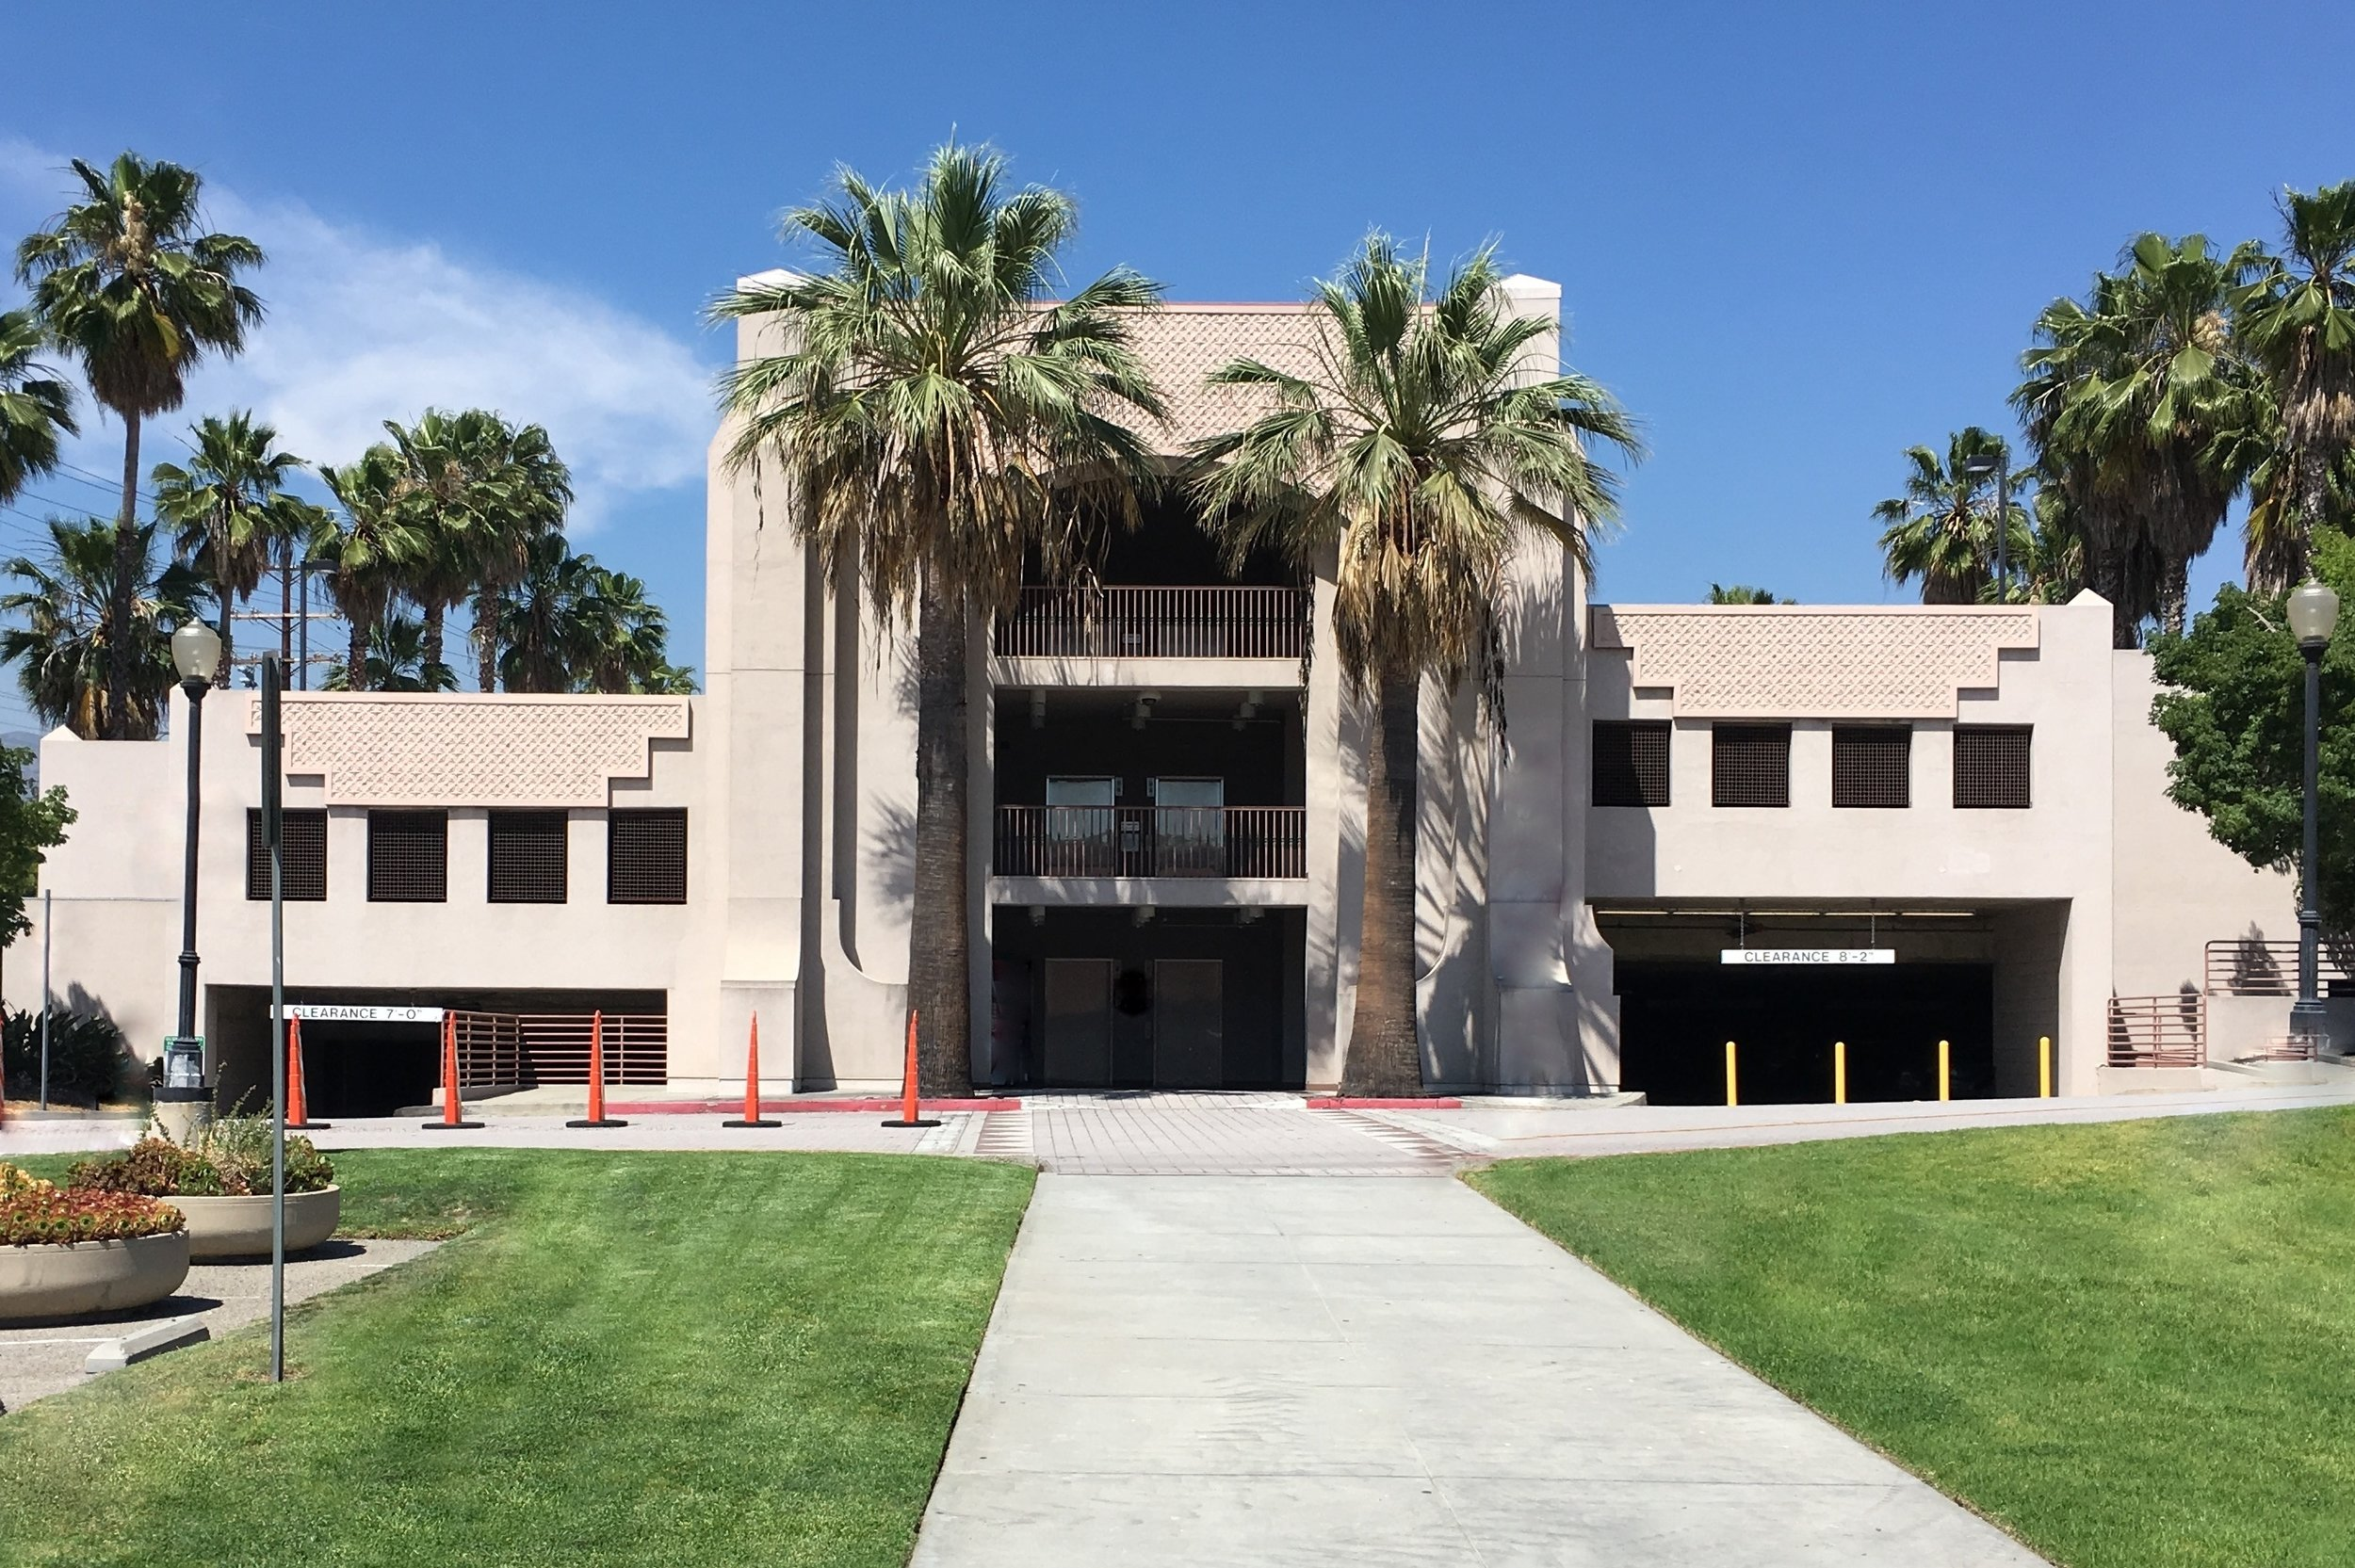 The Glendale Civic Center's dedicated parking structure accommodates over 500 vehicles